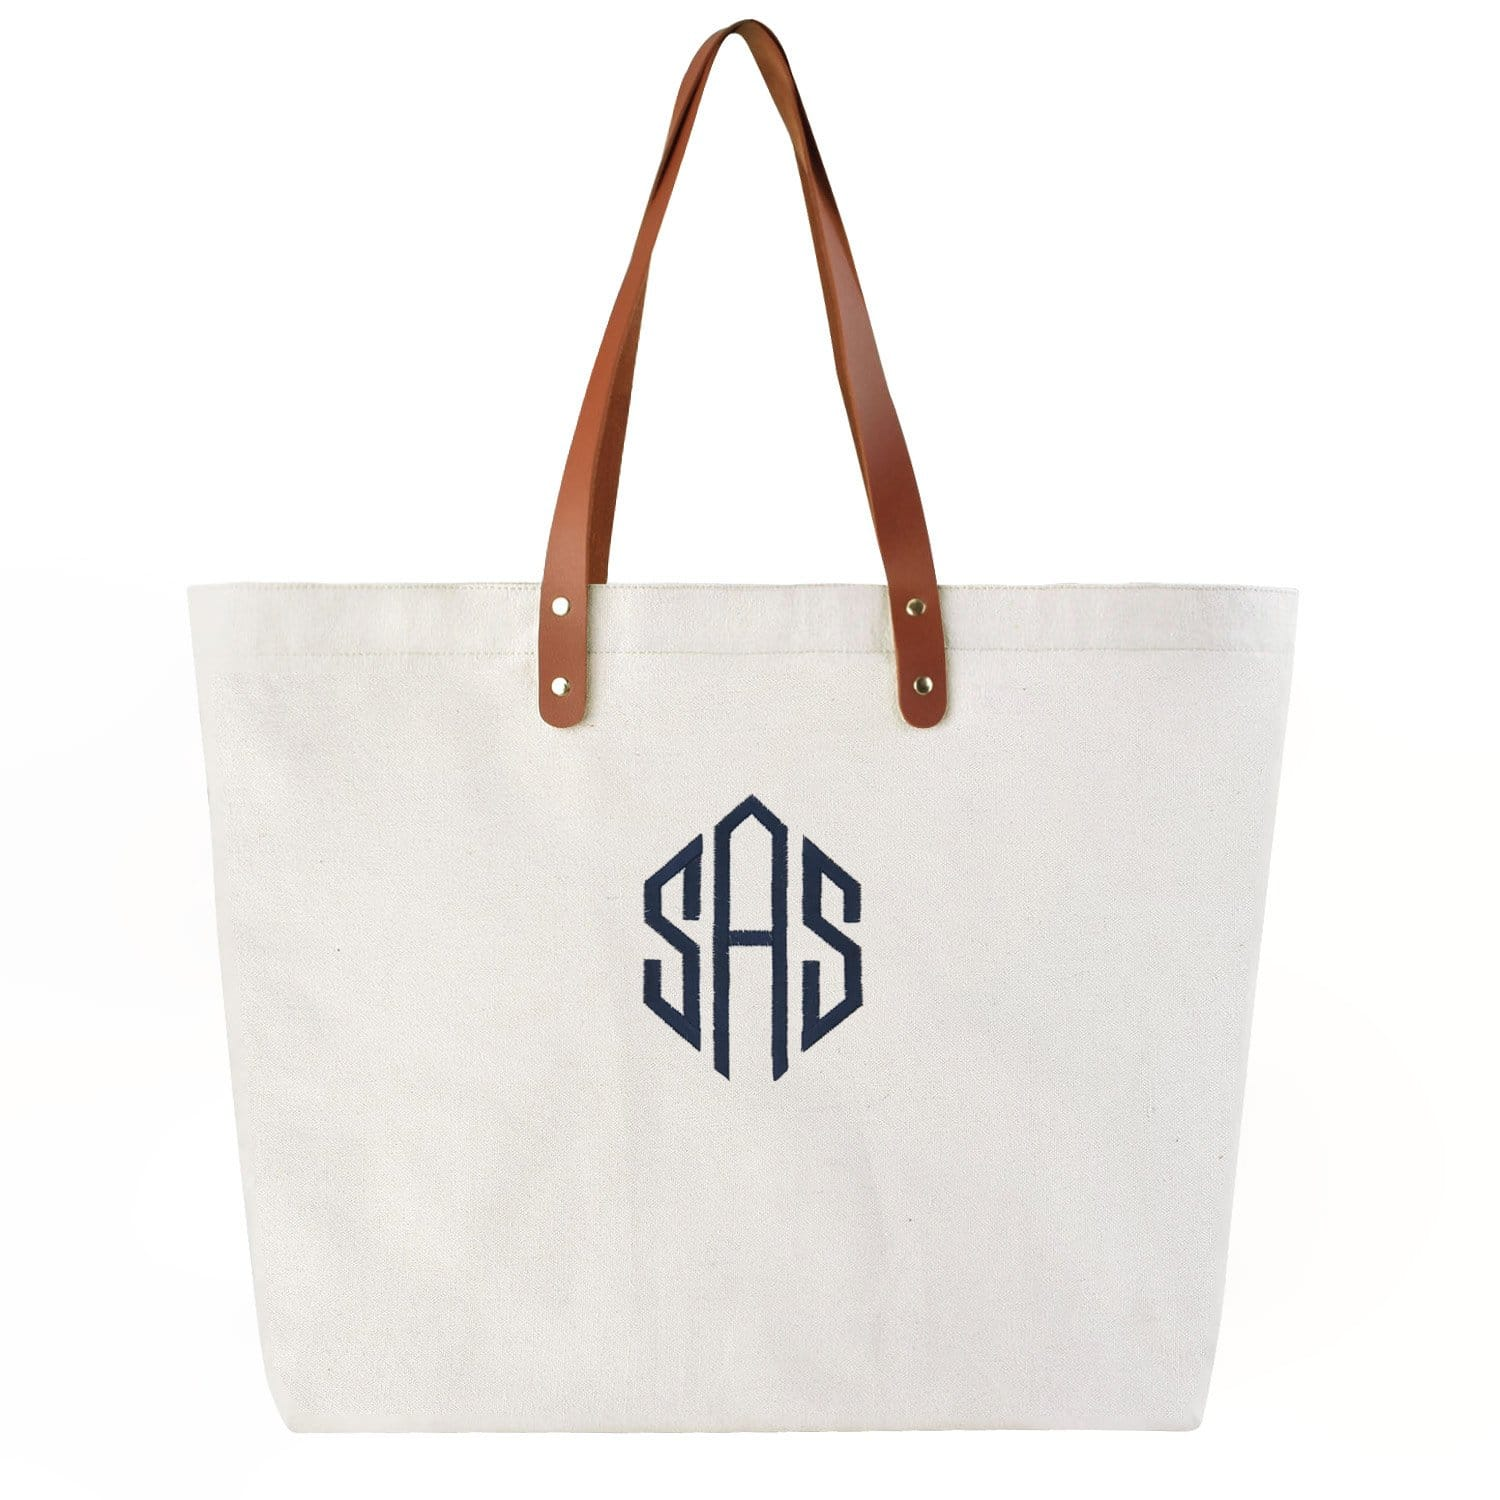 21st-birthday-gift-ideas-tote